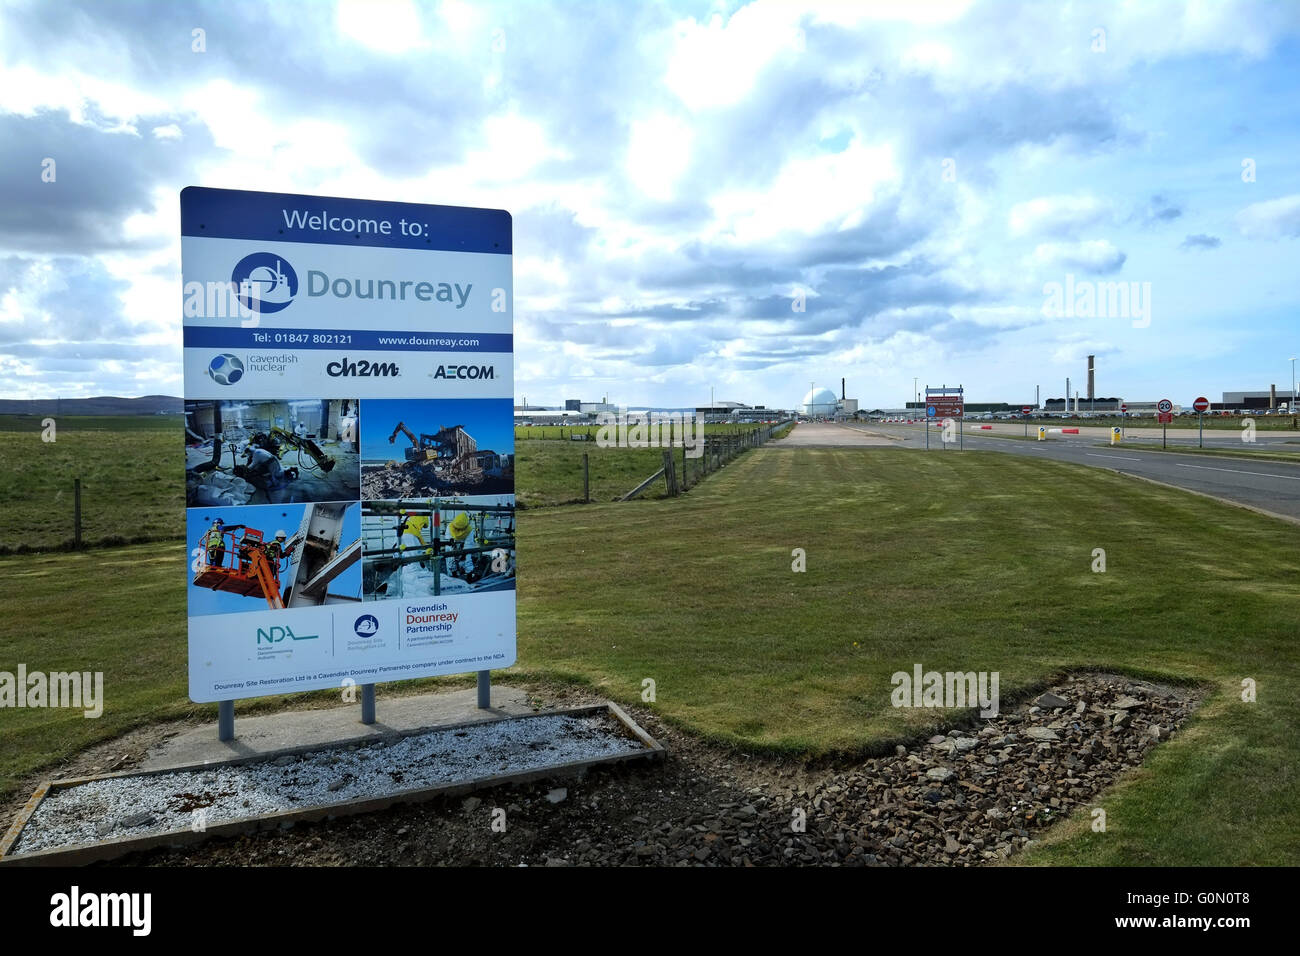 28/04/2016, The main entrance to the former Dounreay Nuclear Power Station, Reay, Caithness, Scotland UK. - Stock Image